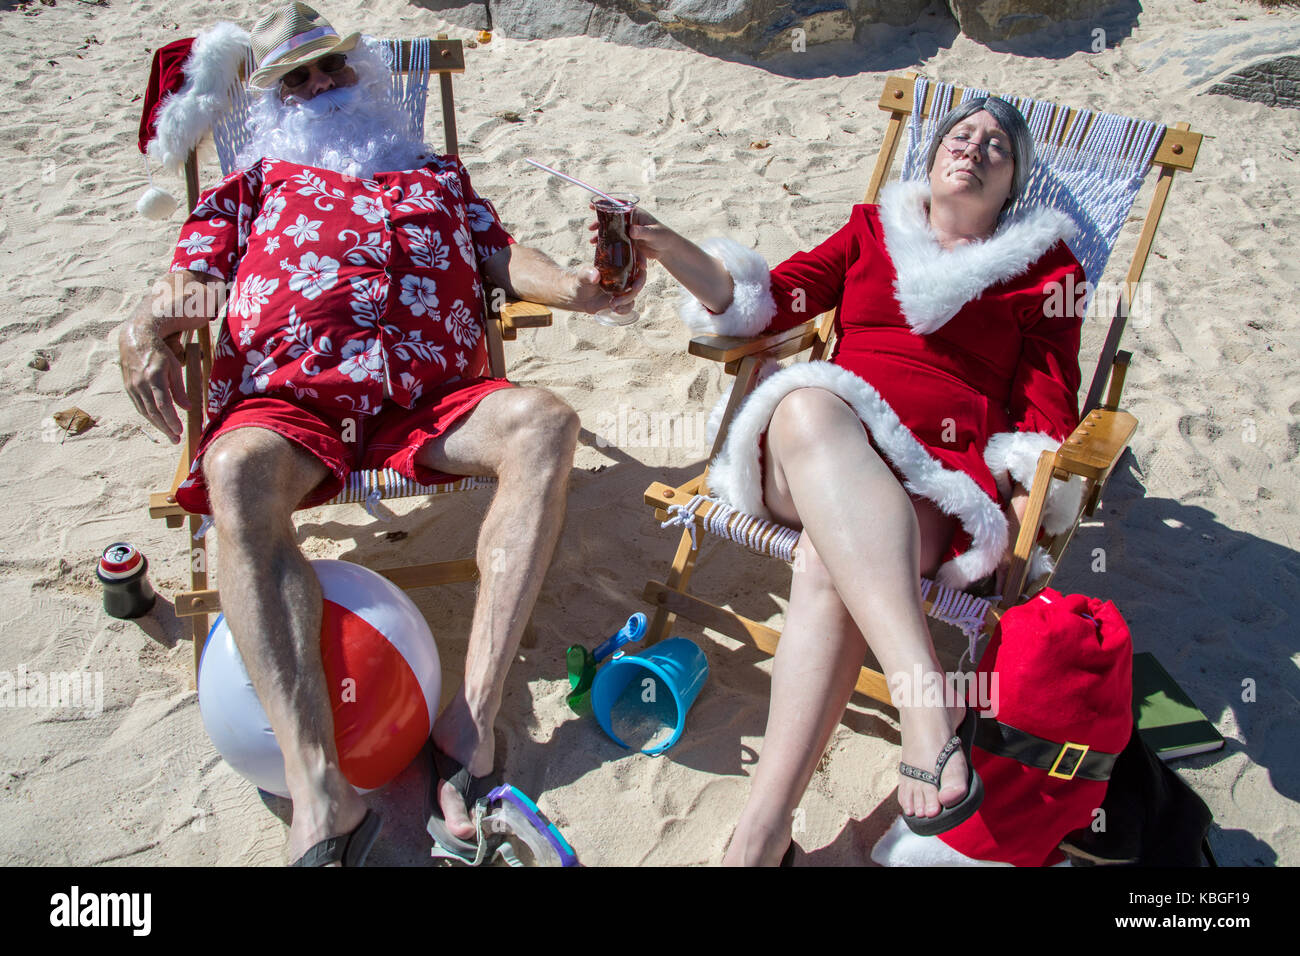 c5a9f453 Santa Claus in red swimming trunks and Hawaiian shirt lounging on sandy  beach with Mrs Claus sharing a tropical drink